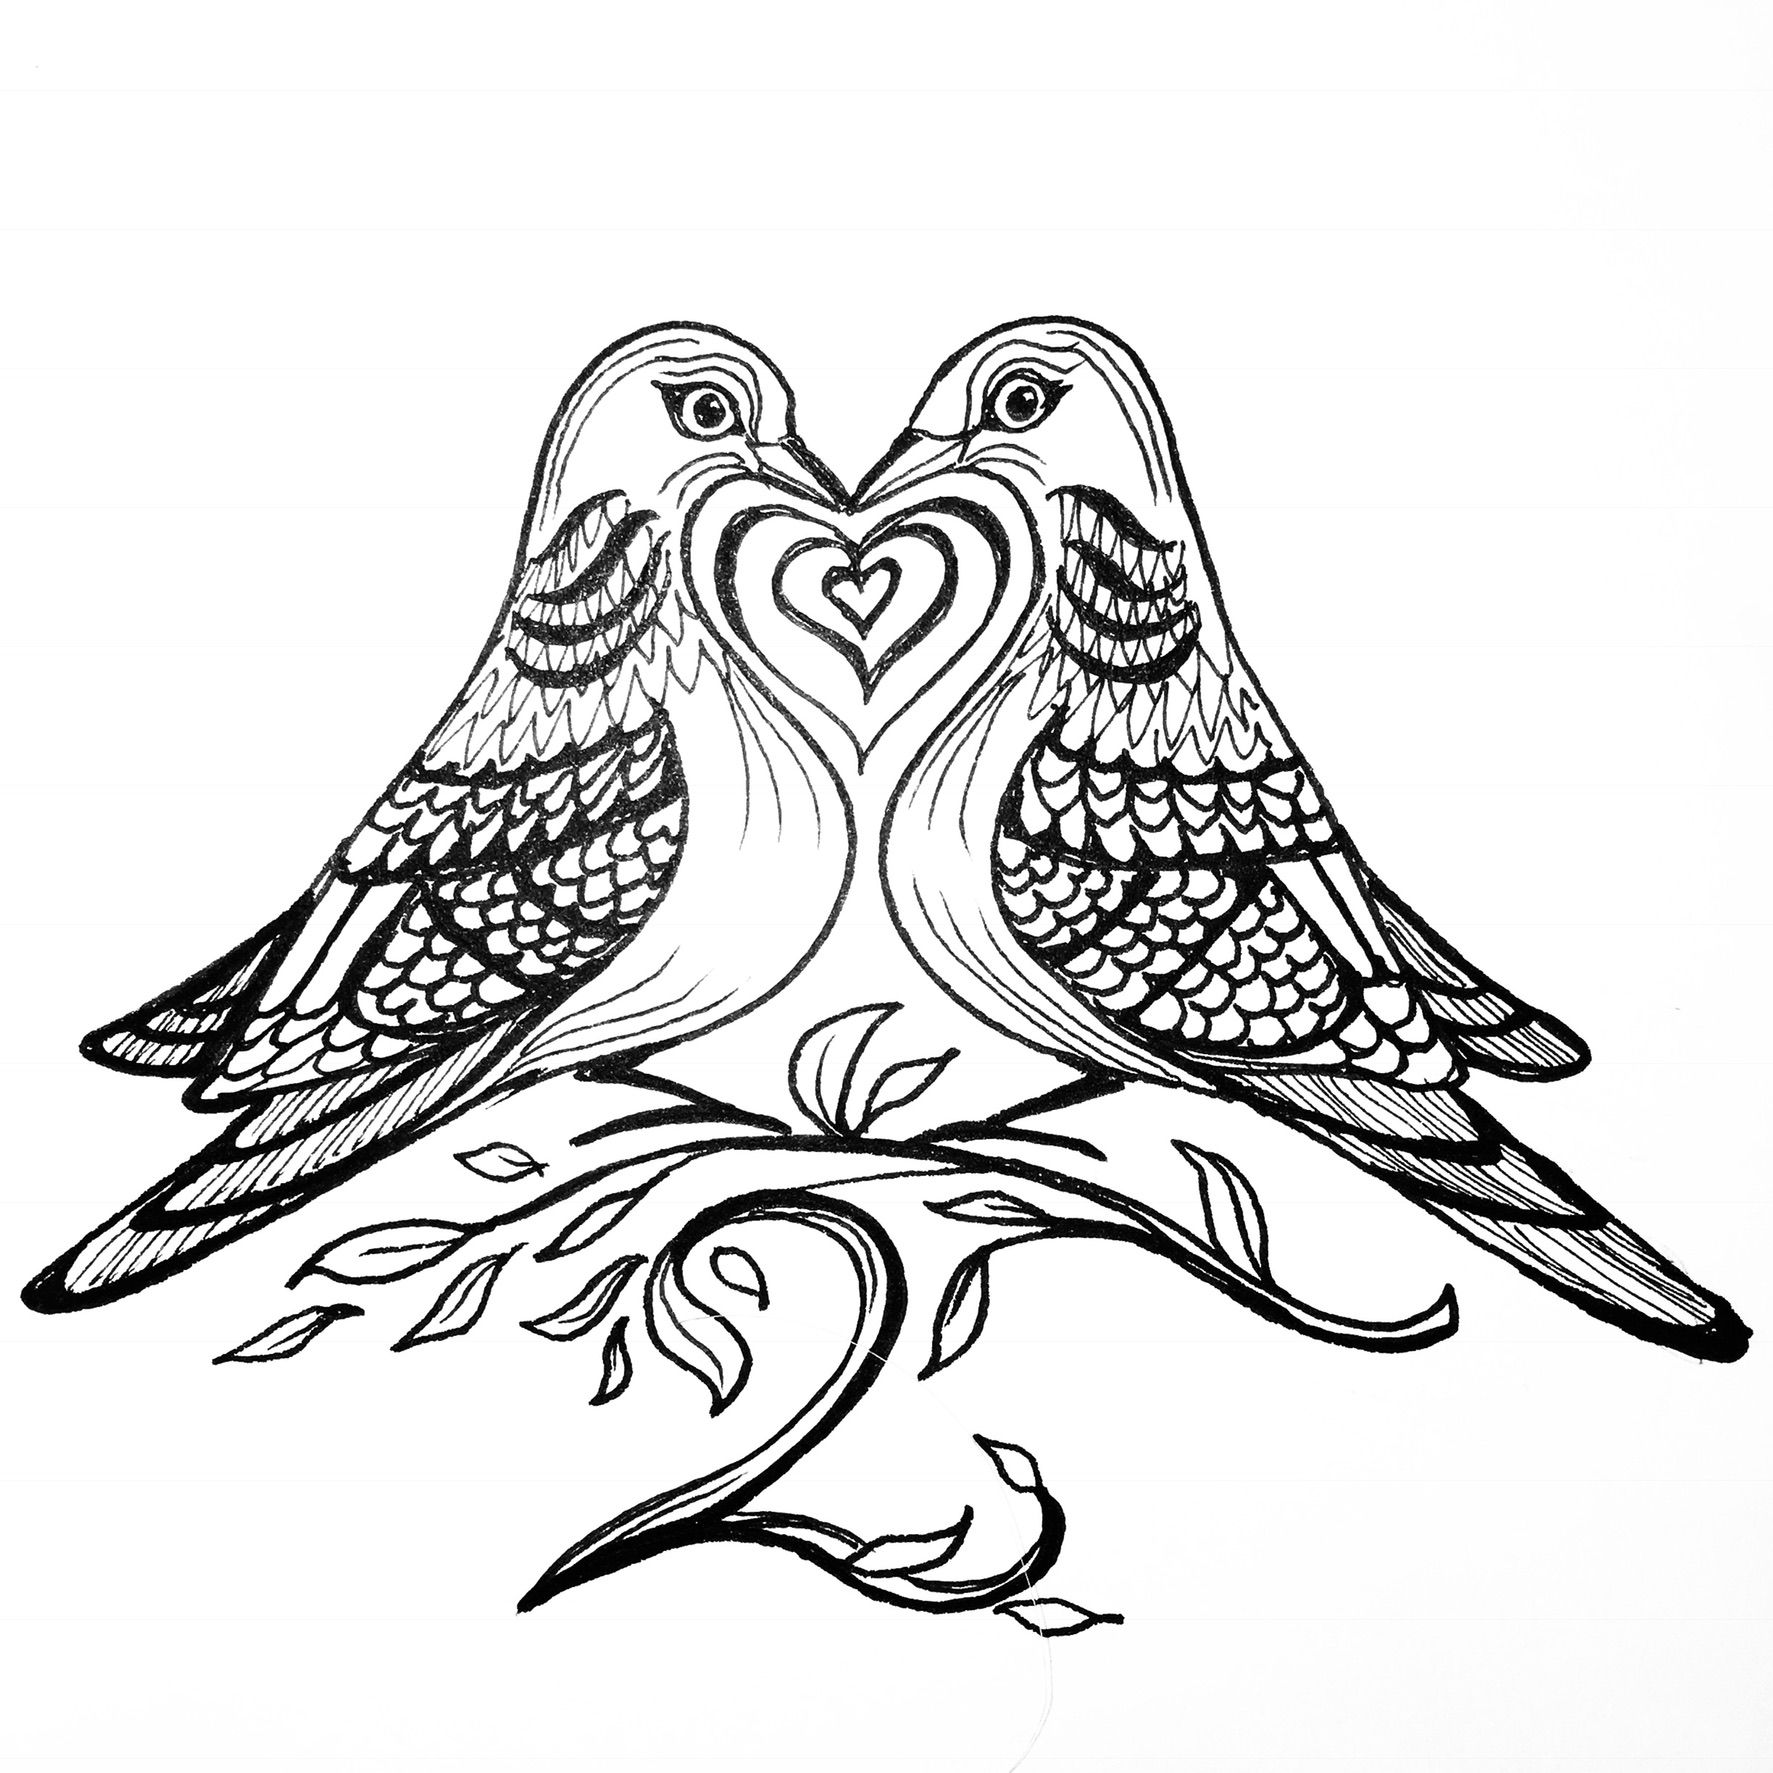 02 Turtle Doves Christmas Coloringkidsboys Gif 1 056 816 Pixels Christmas Coloring Sheets Christmas Coloring Pages Coloring Pages